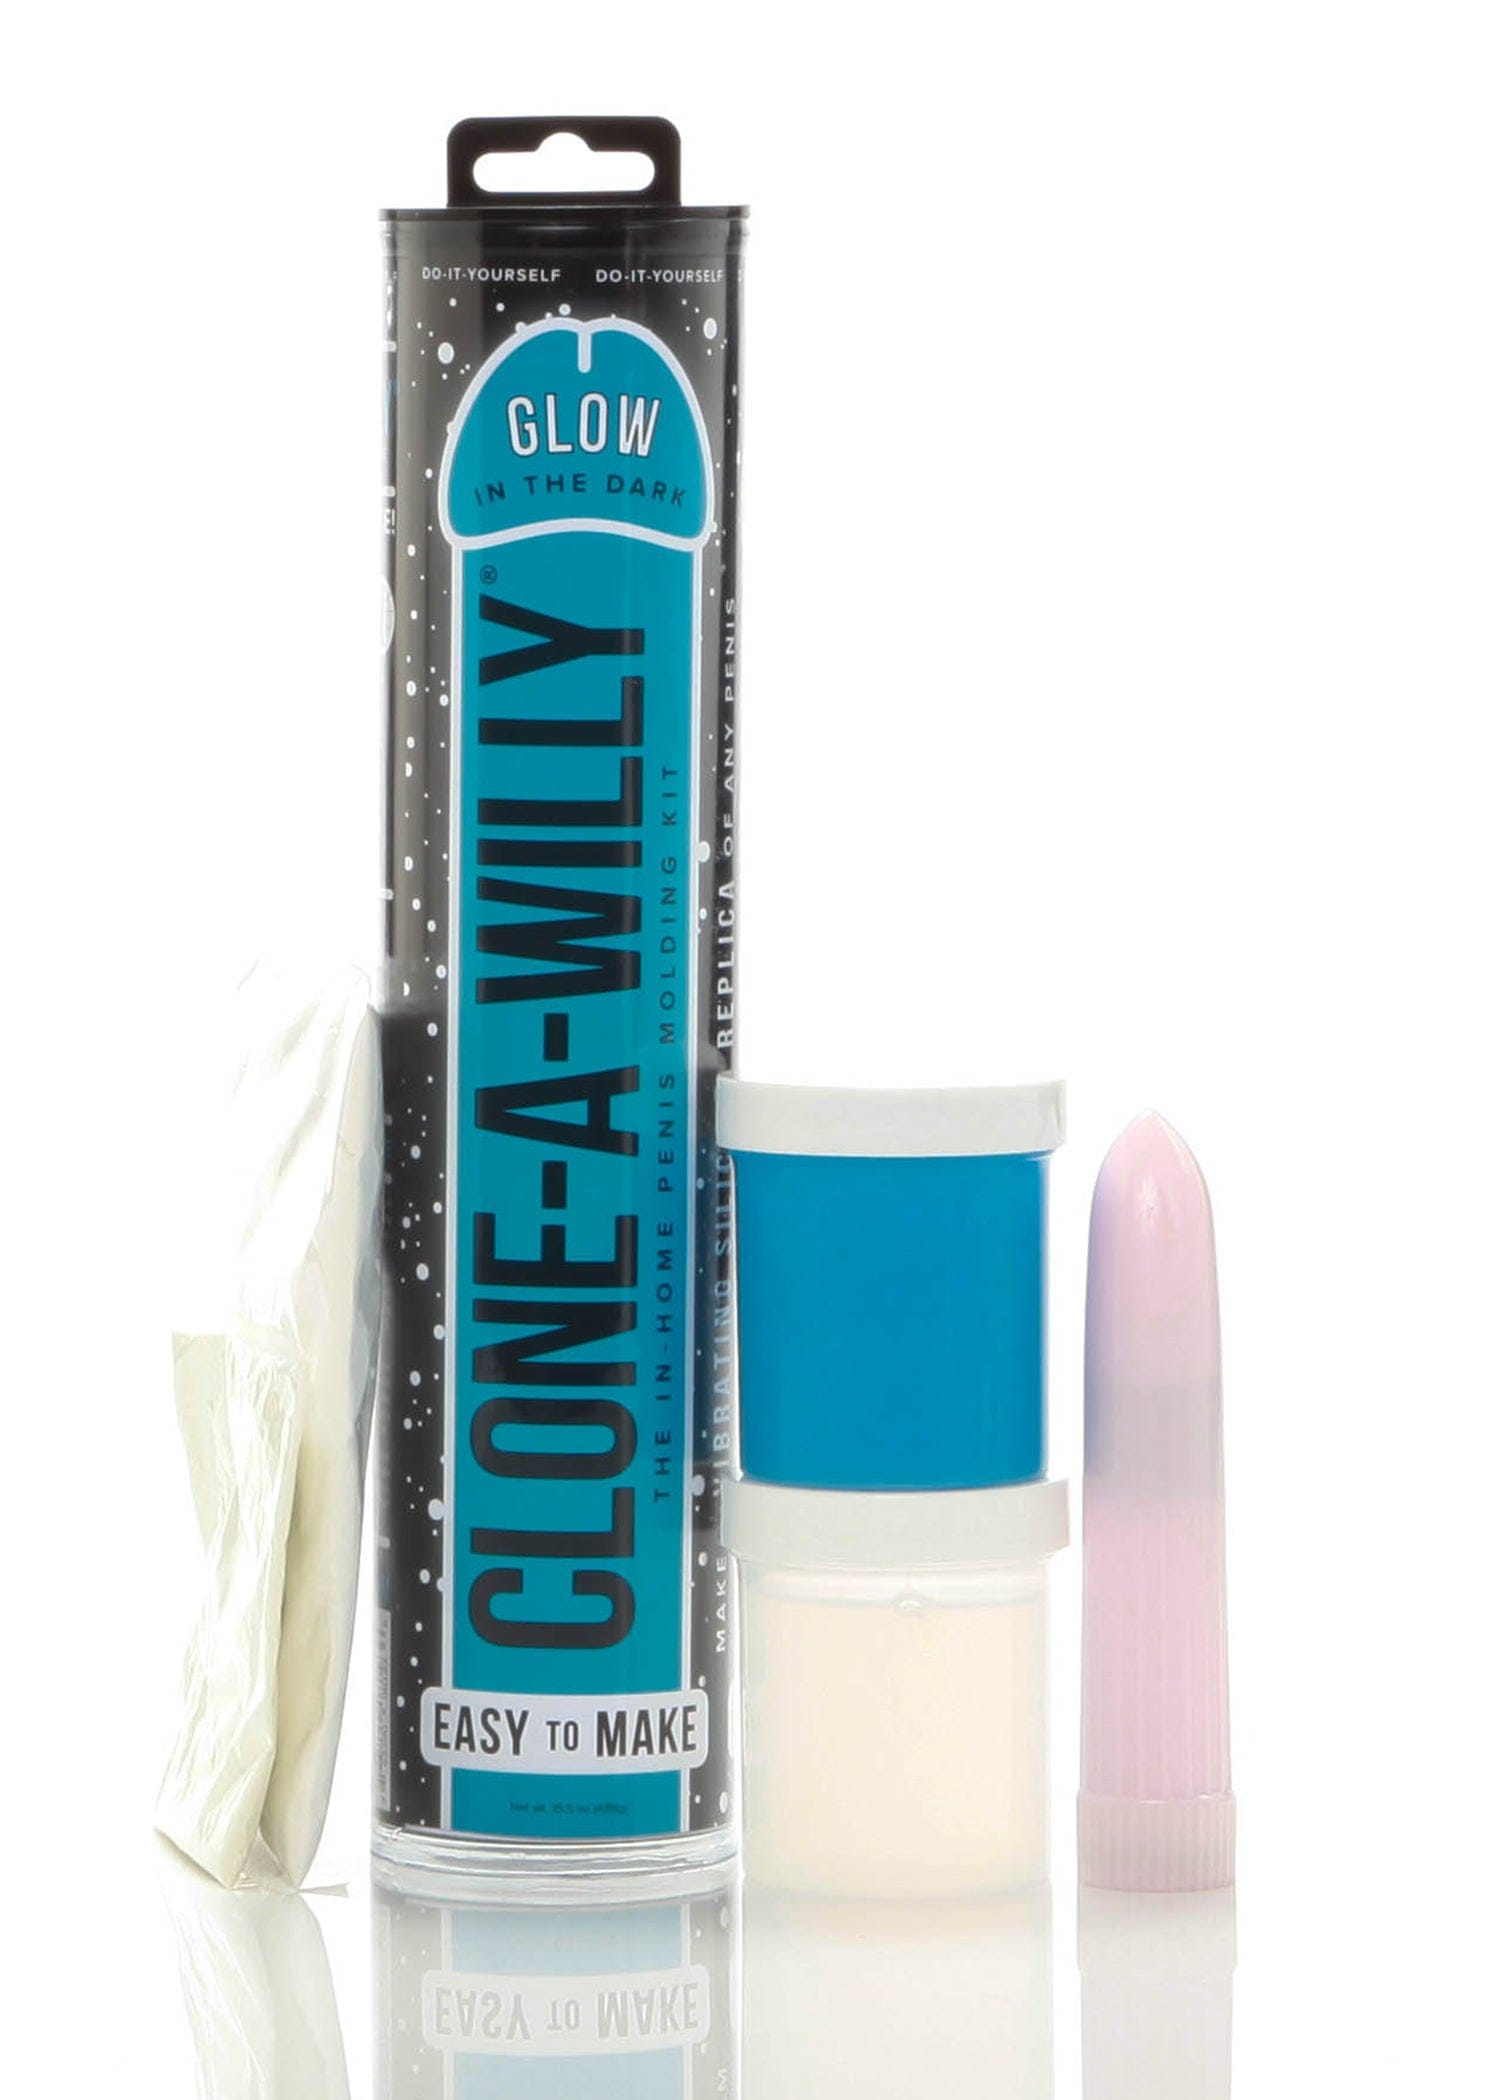 Clone-a-Willy Glow-in-the-Dark Kits by Clone-a-Willy - rolik